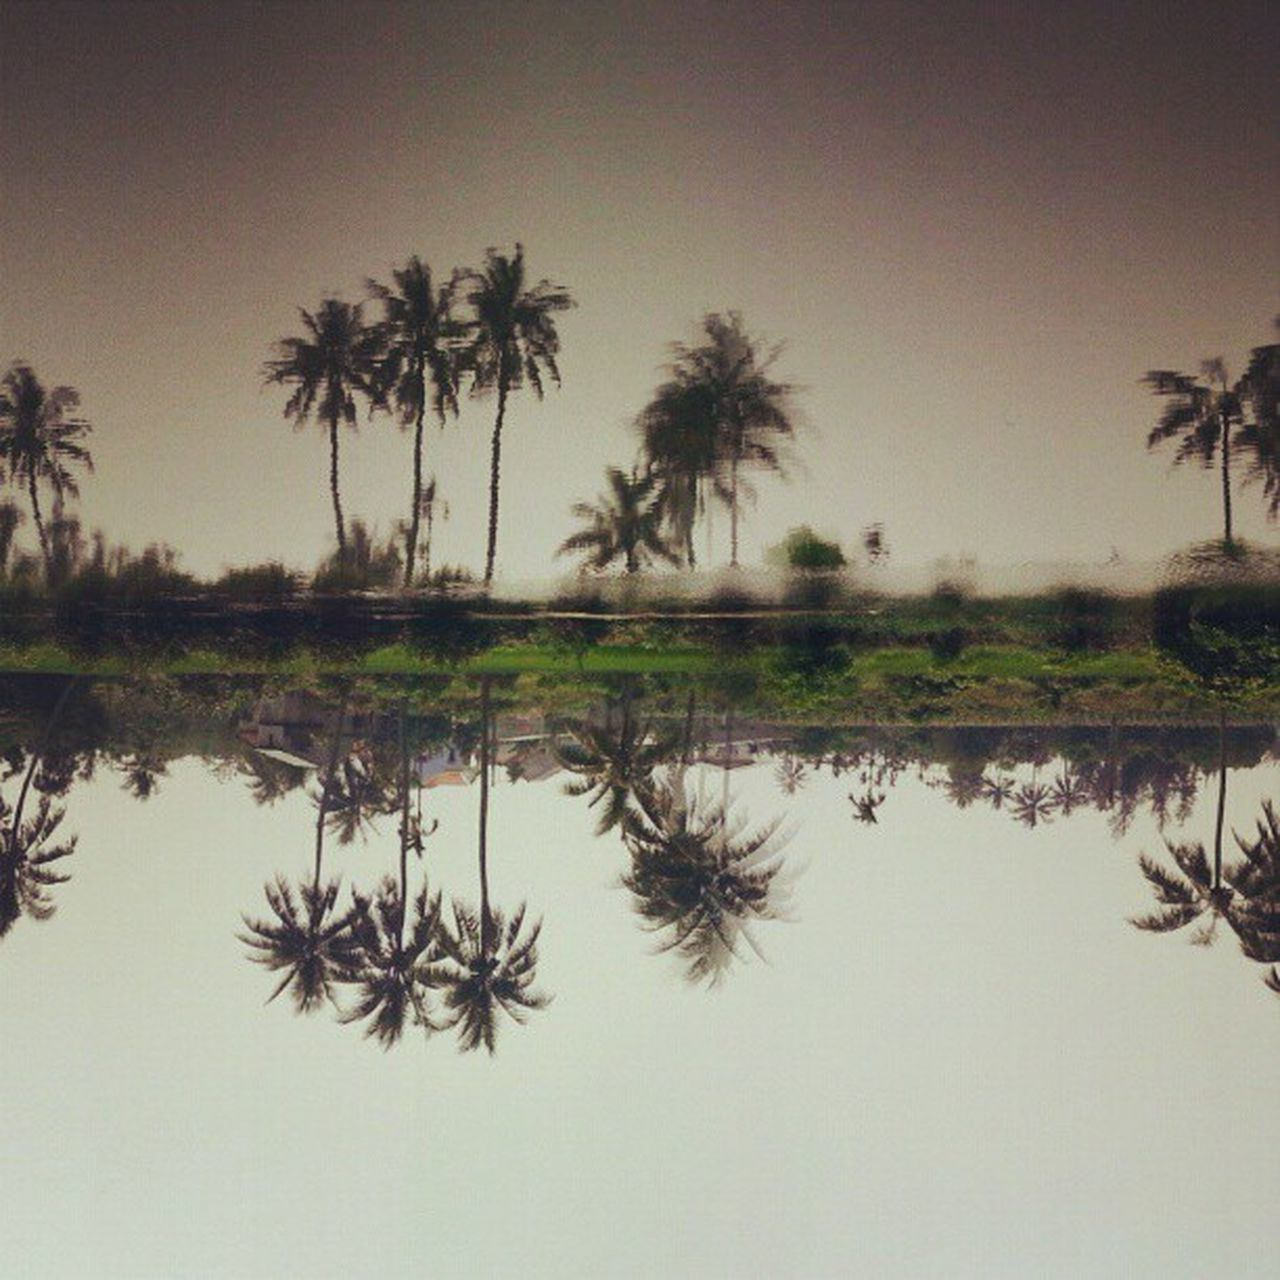 Reflection Hoianriver Vietnam Southeastasia Travel